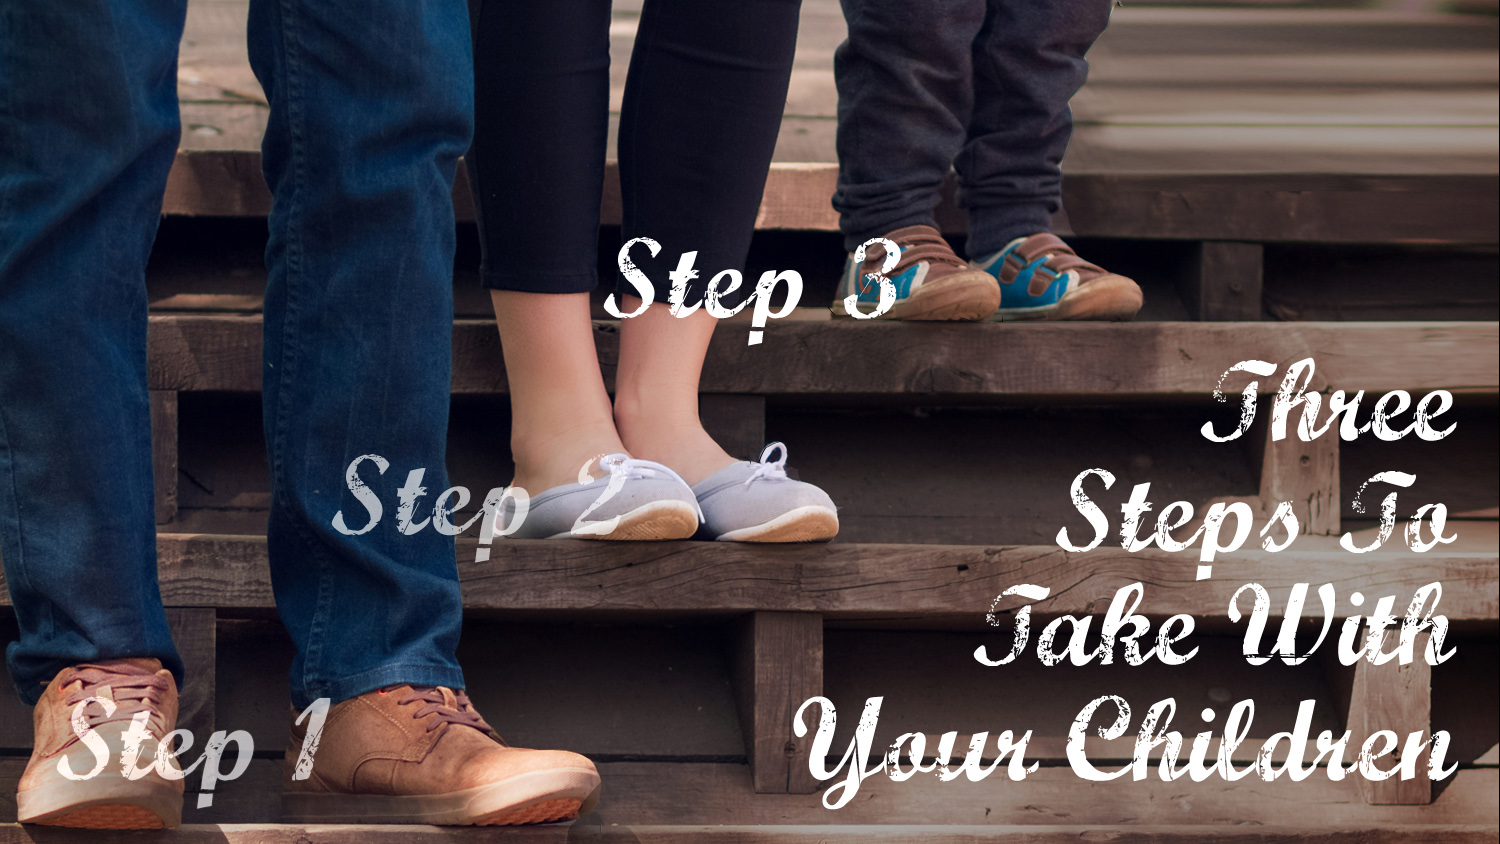 3 Steps To Take With Your Children Step 3.jpg